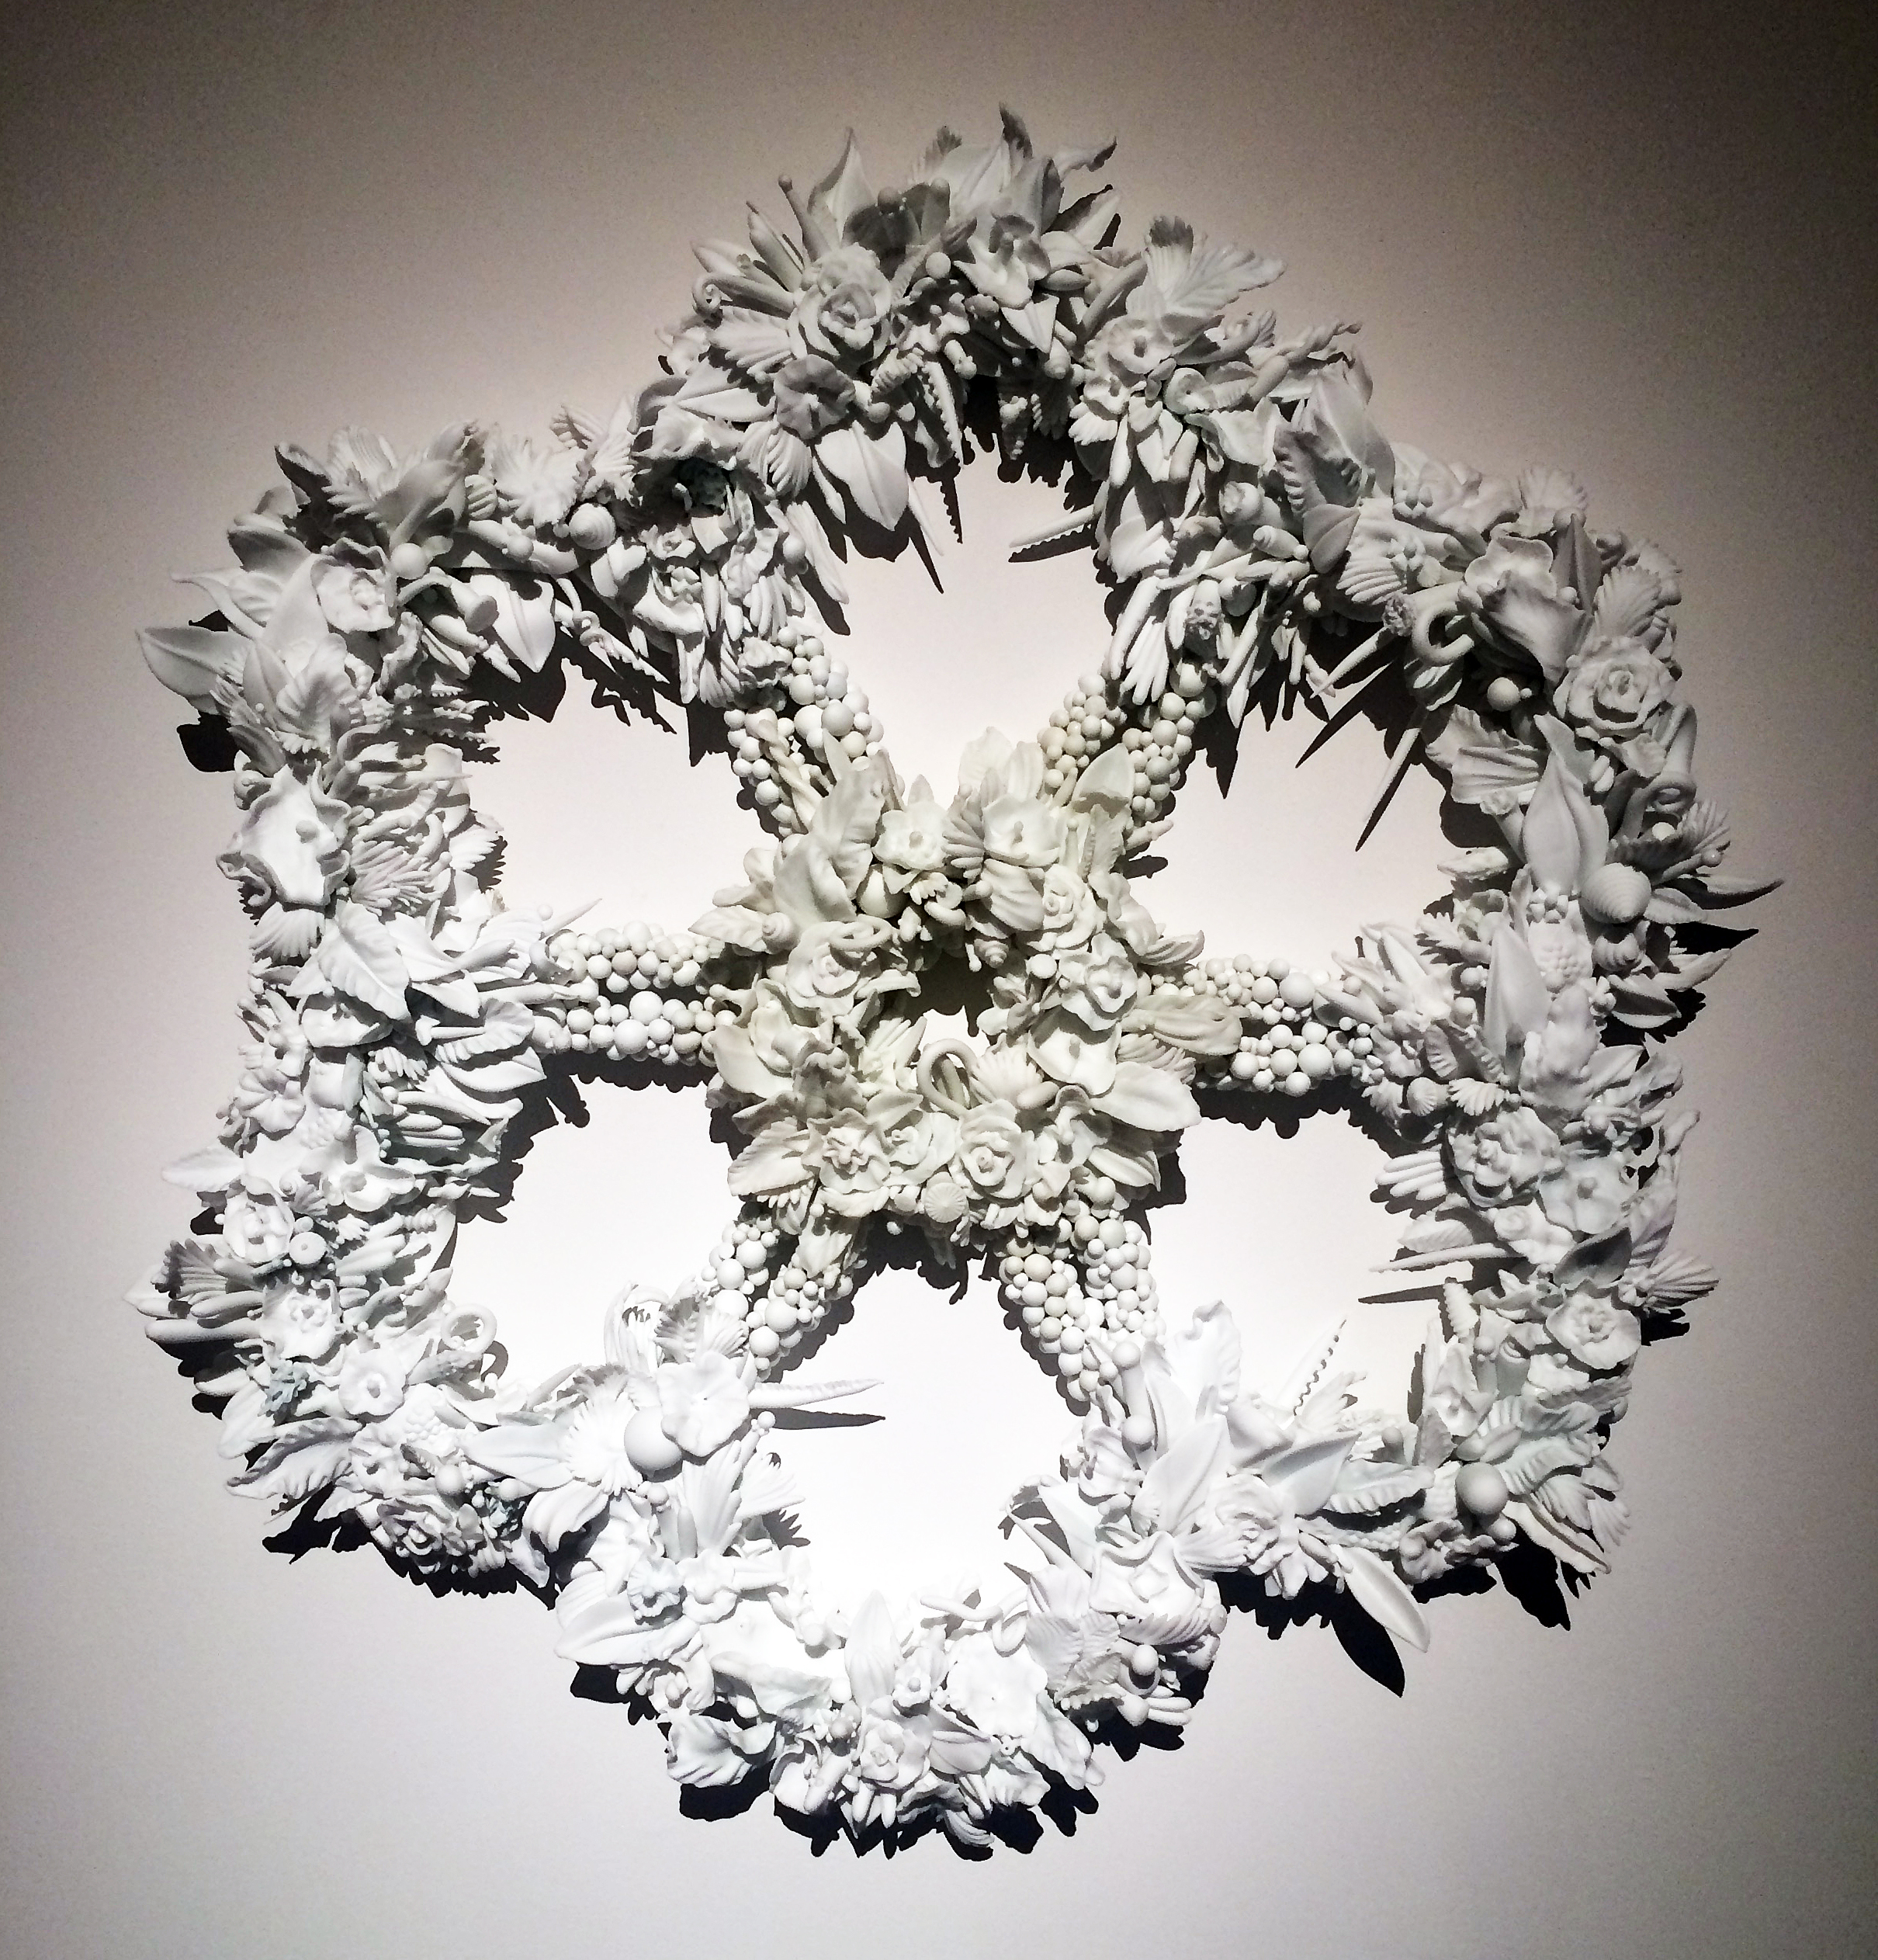 image-1-amber-cowan-rosette-in-milk-and-ivory-flameworked-pressed-and-sheet-glass-mixed-media